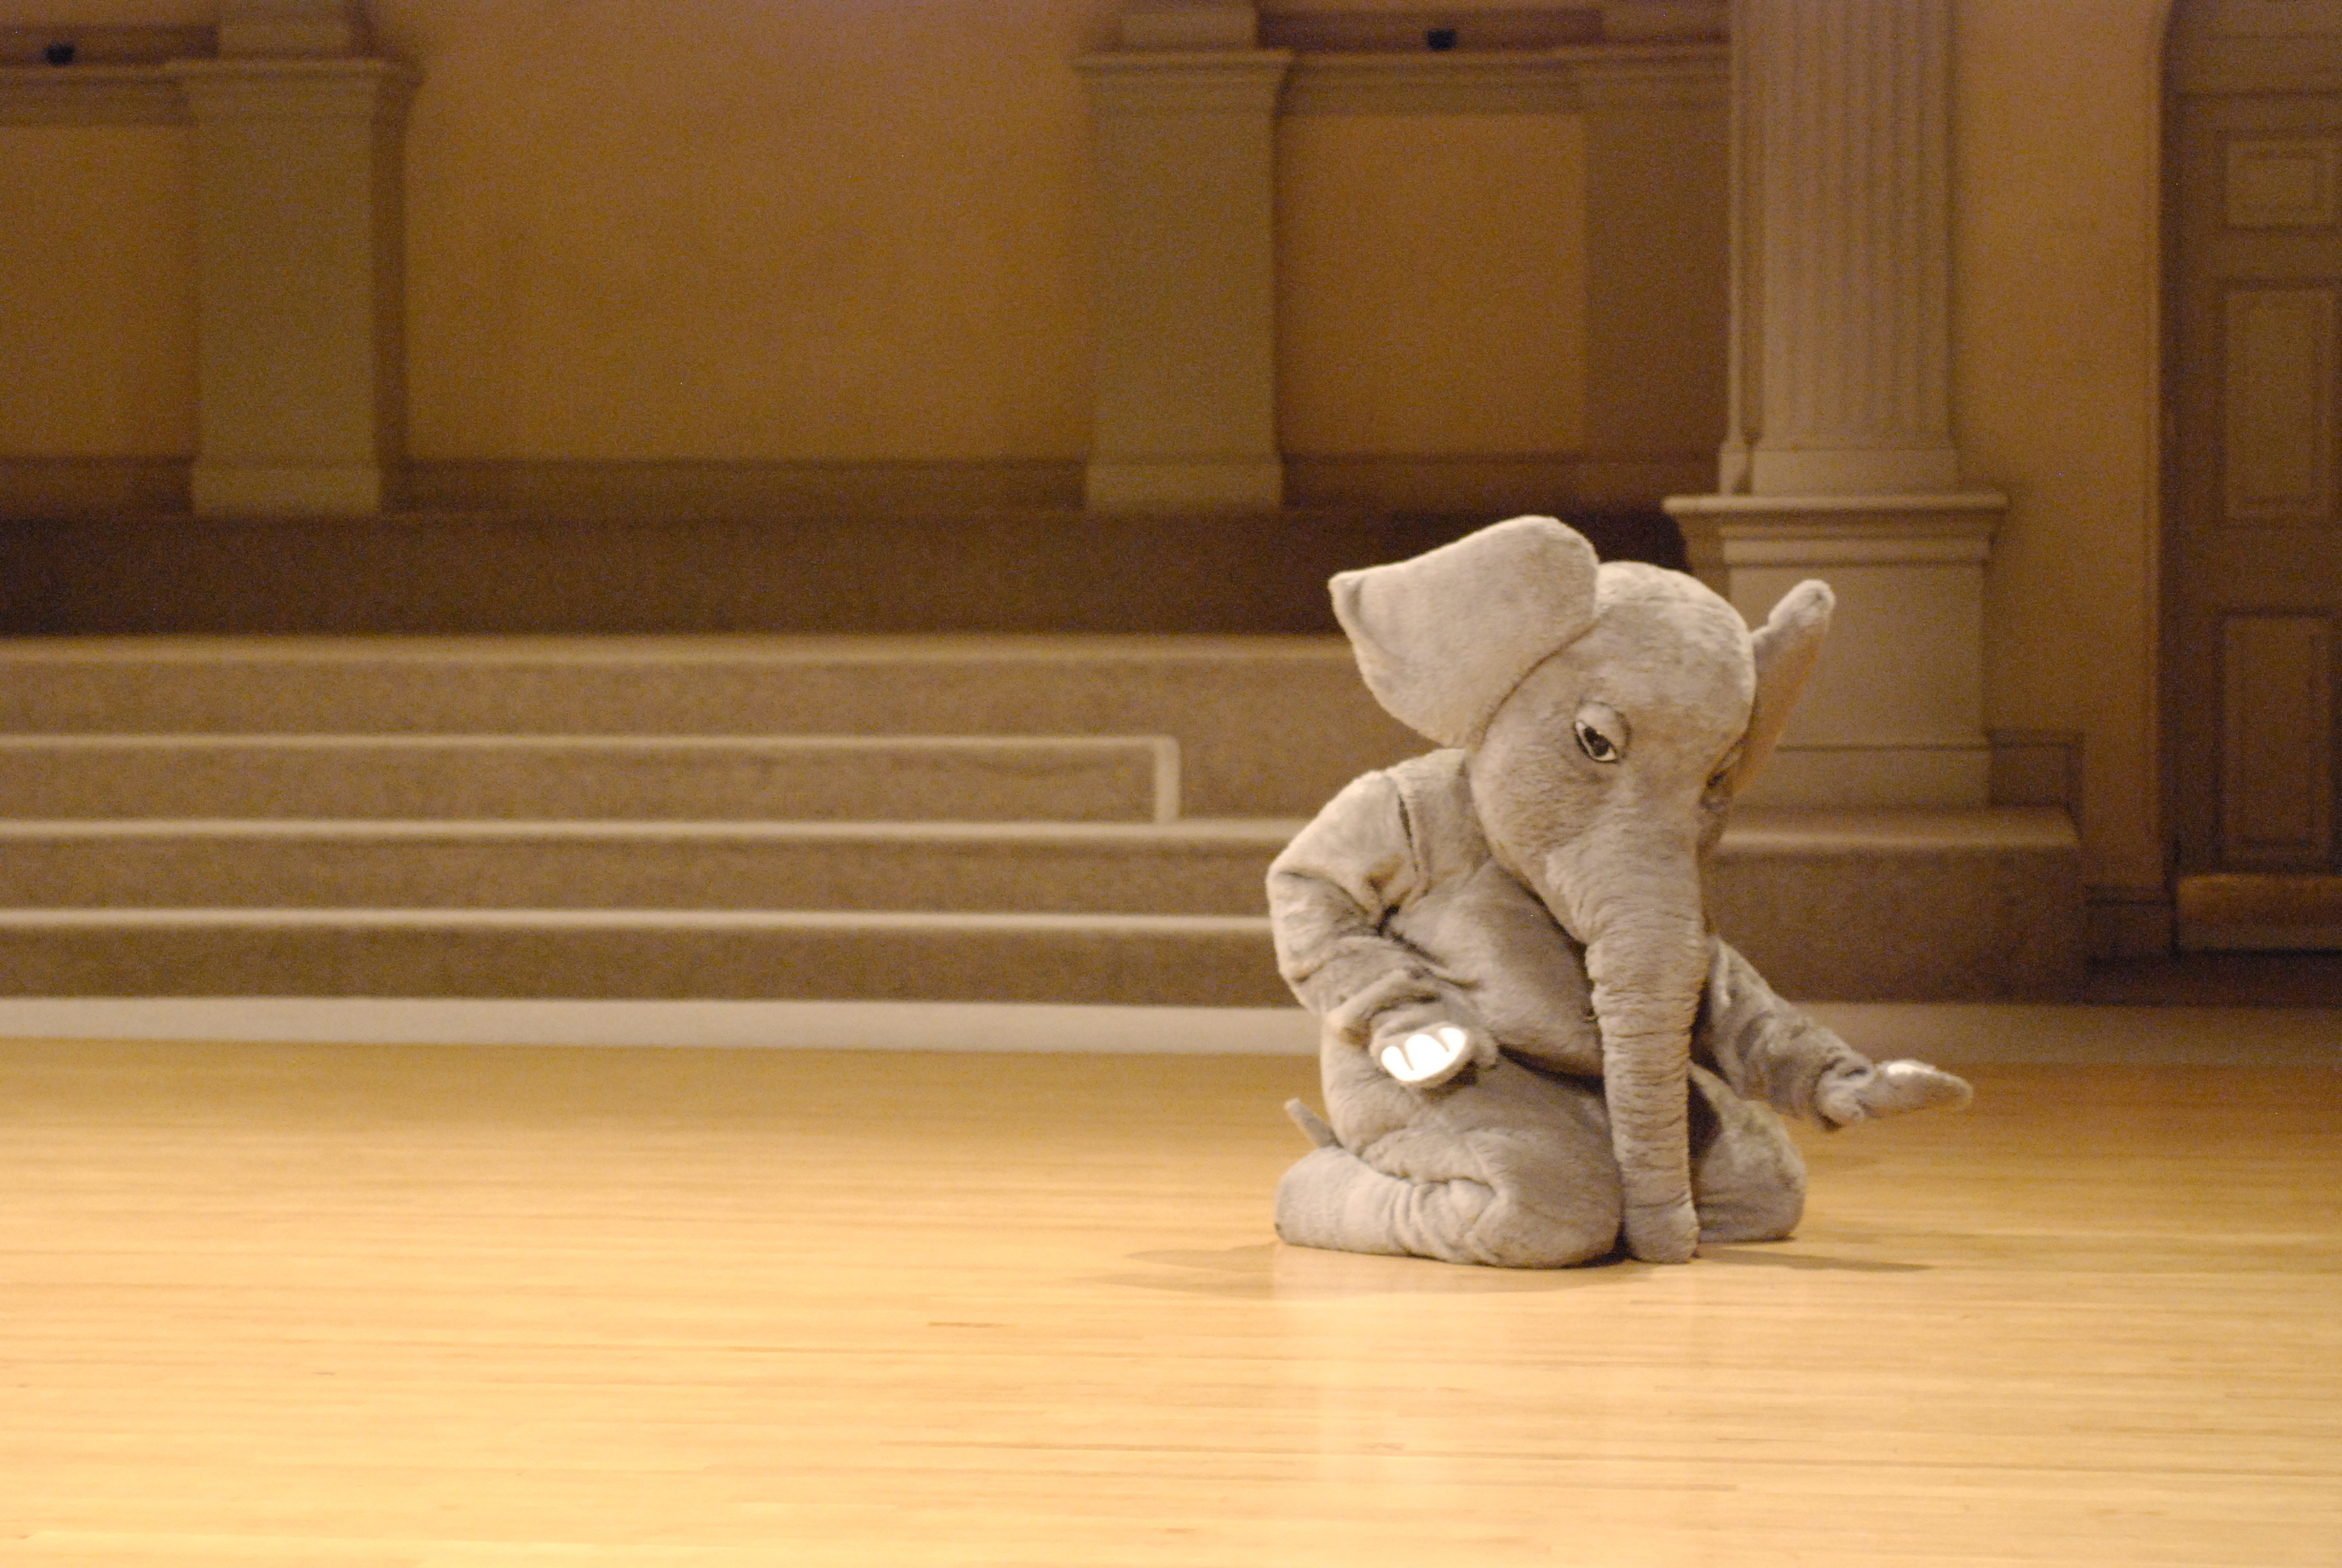 Lionel Popkin's There is an Elephant in This Dance